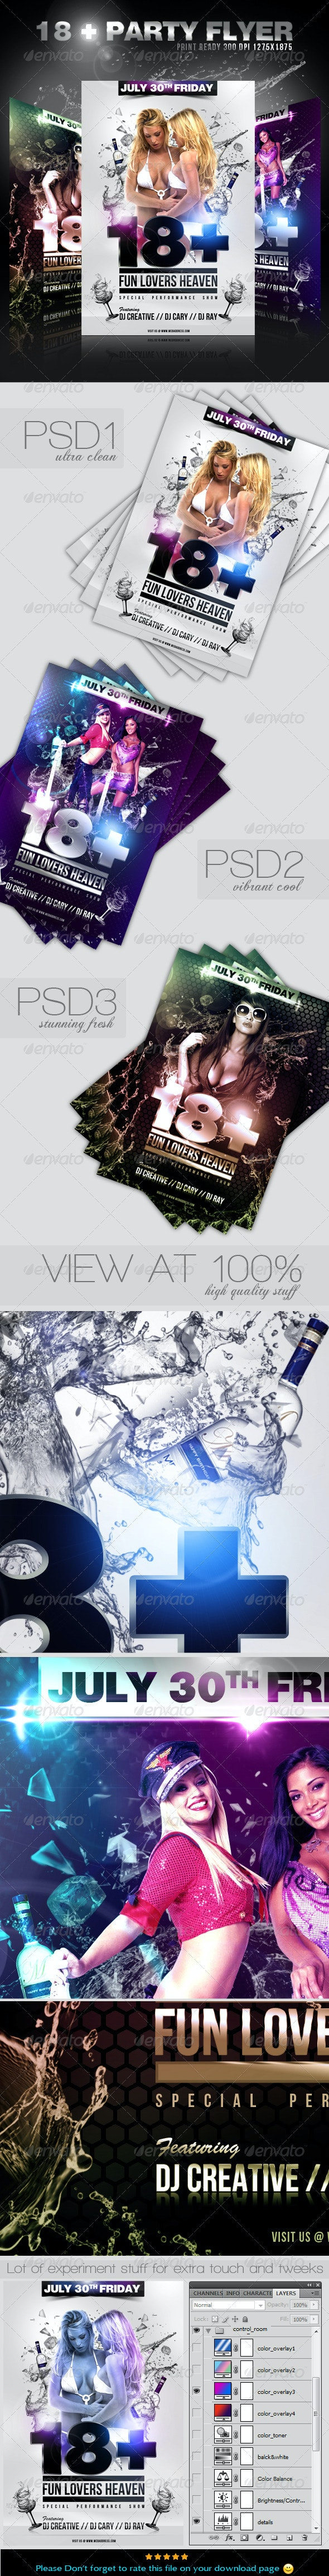 18 + Party / Event Flyer  Template - Clubs & Parties Events